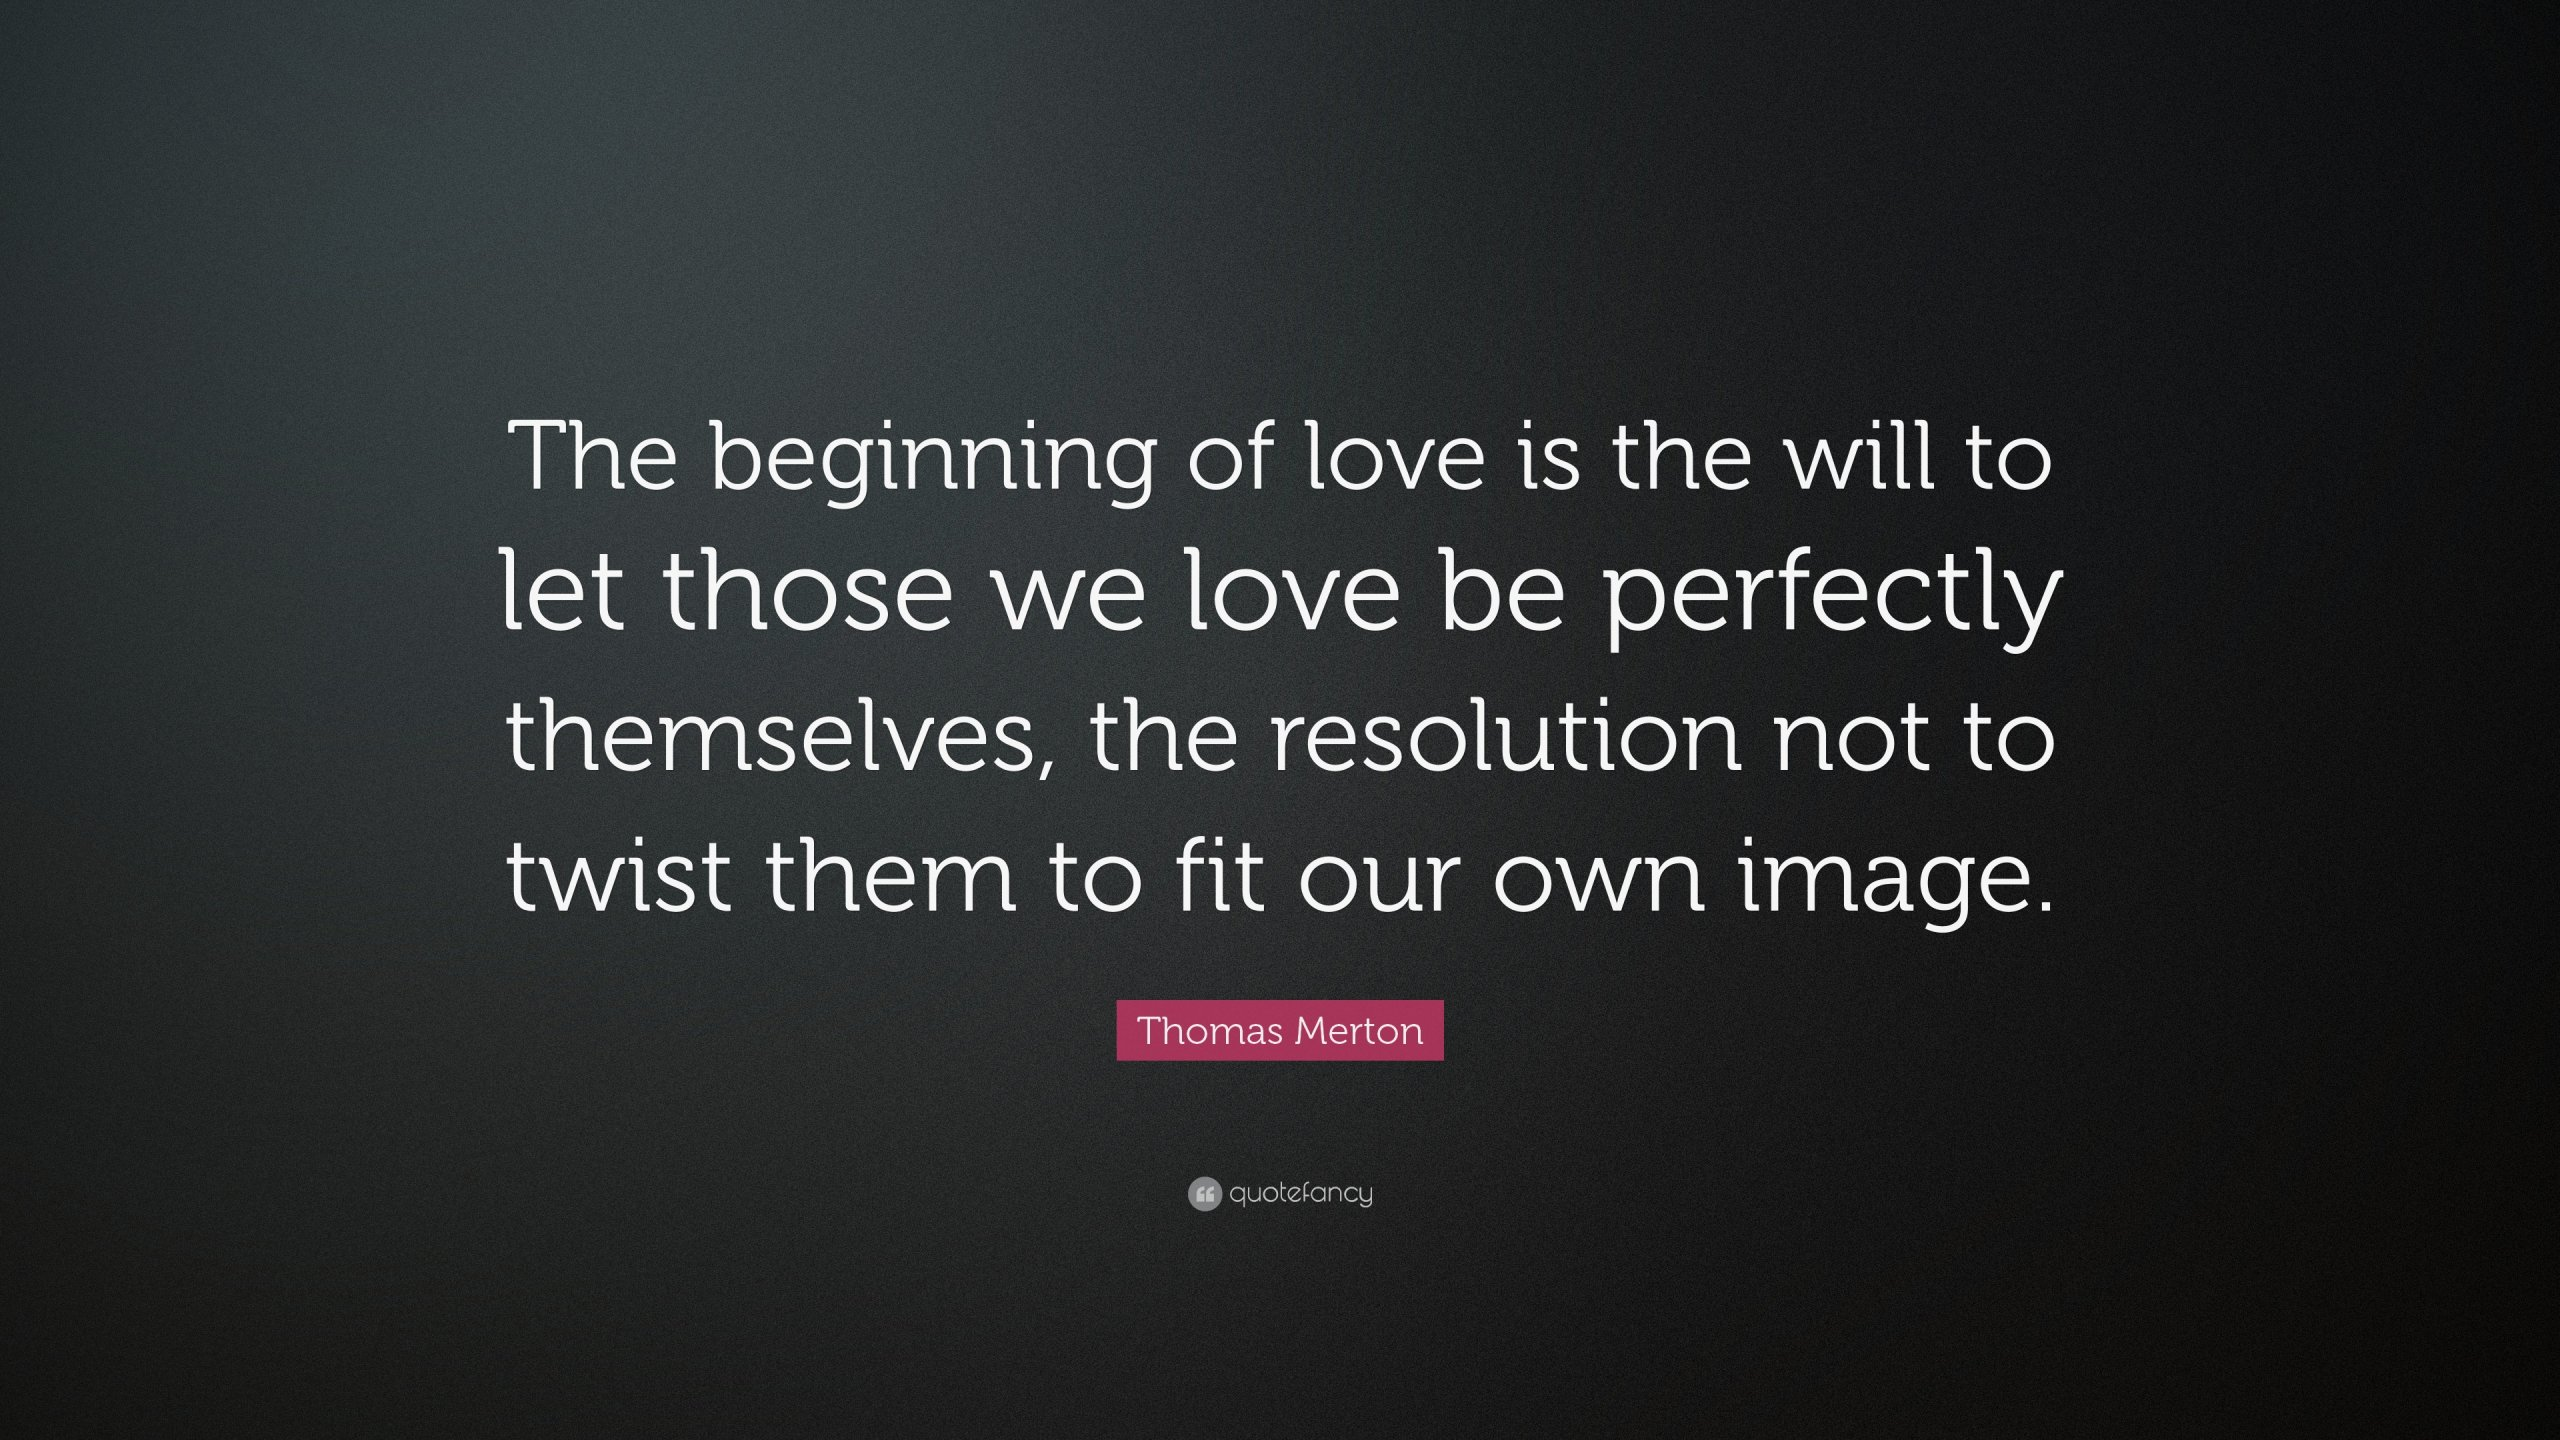 10857-Thomas-Merton-Quote-The-beginning-of-love-is-the-will-to-let-those.jpg